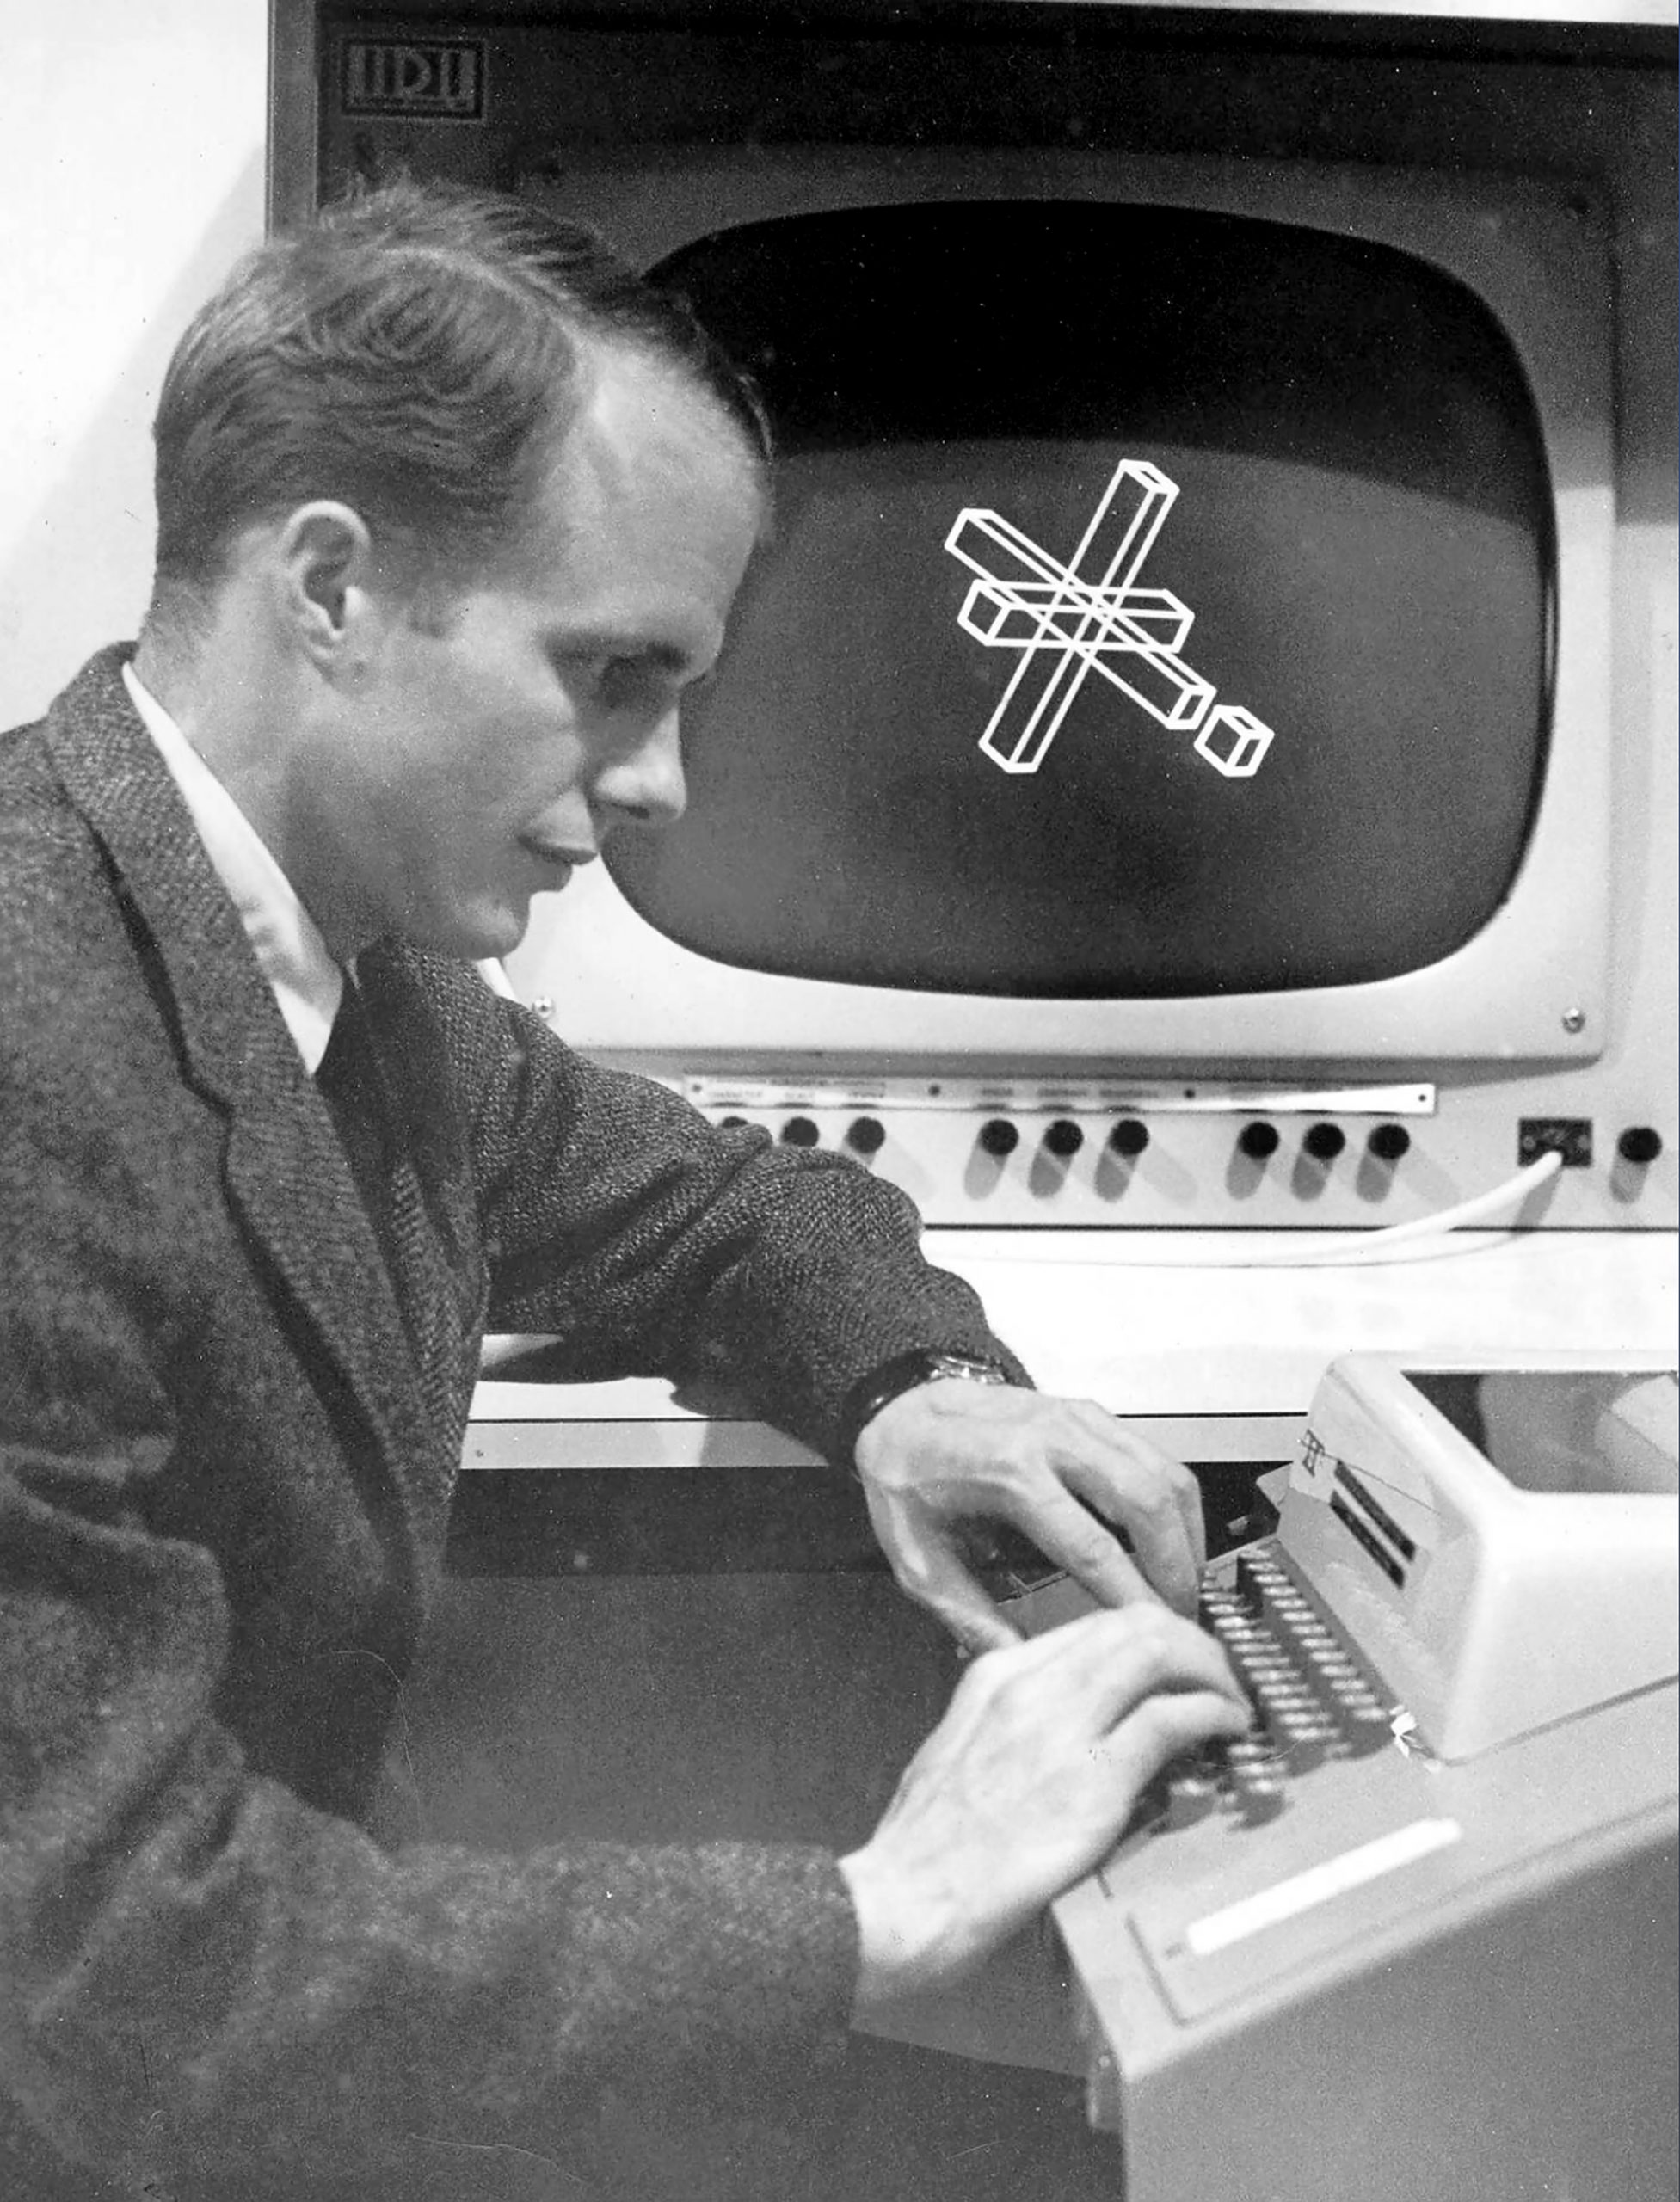 John W. Warnock, the founder of Adobe Systems, is seen here in a 1968 photo. Warnock received his PhD from the University of Utah's computer science department in 1969.